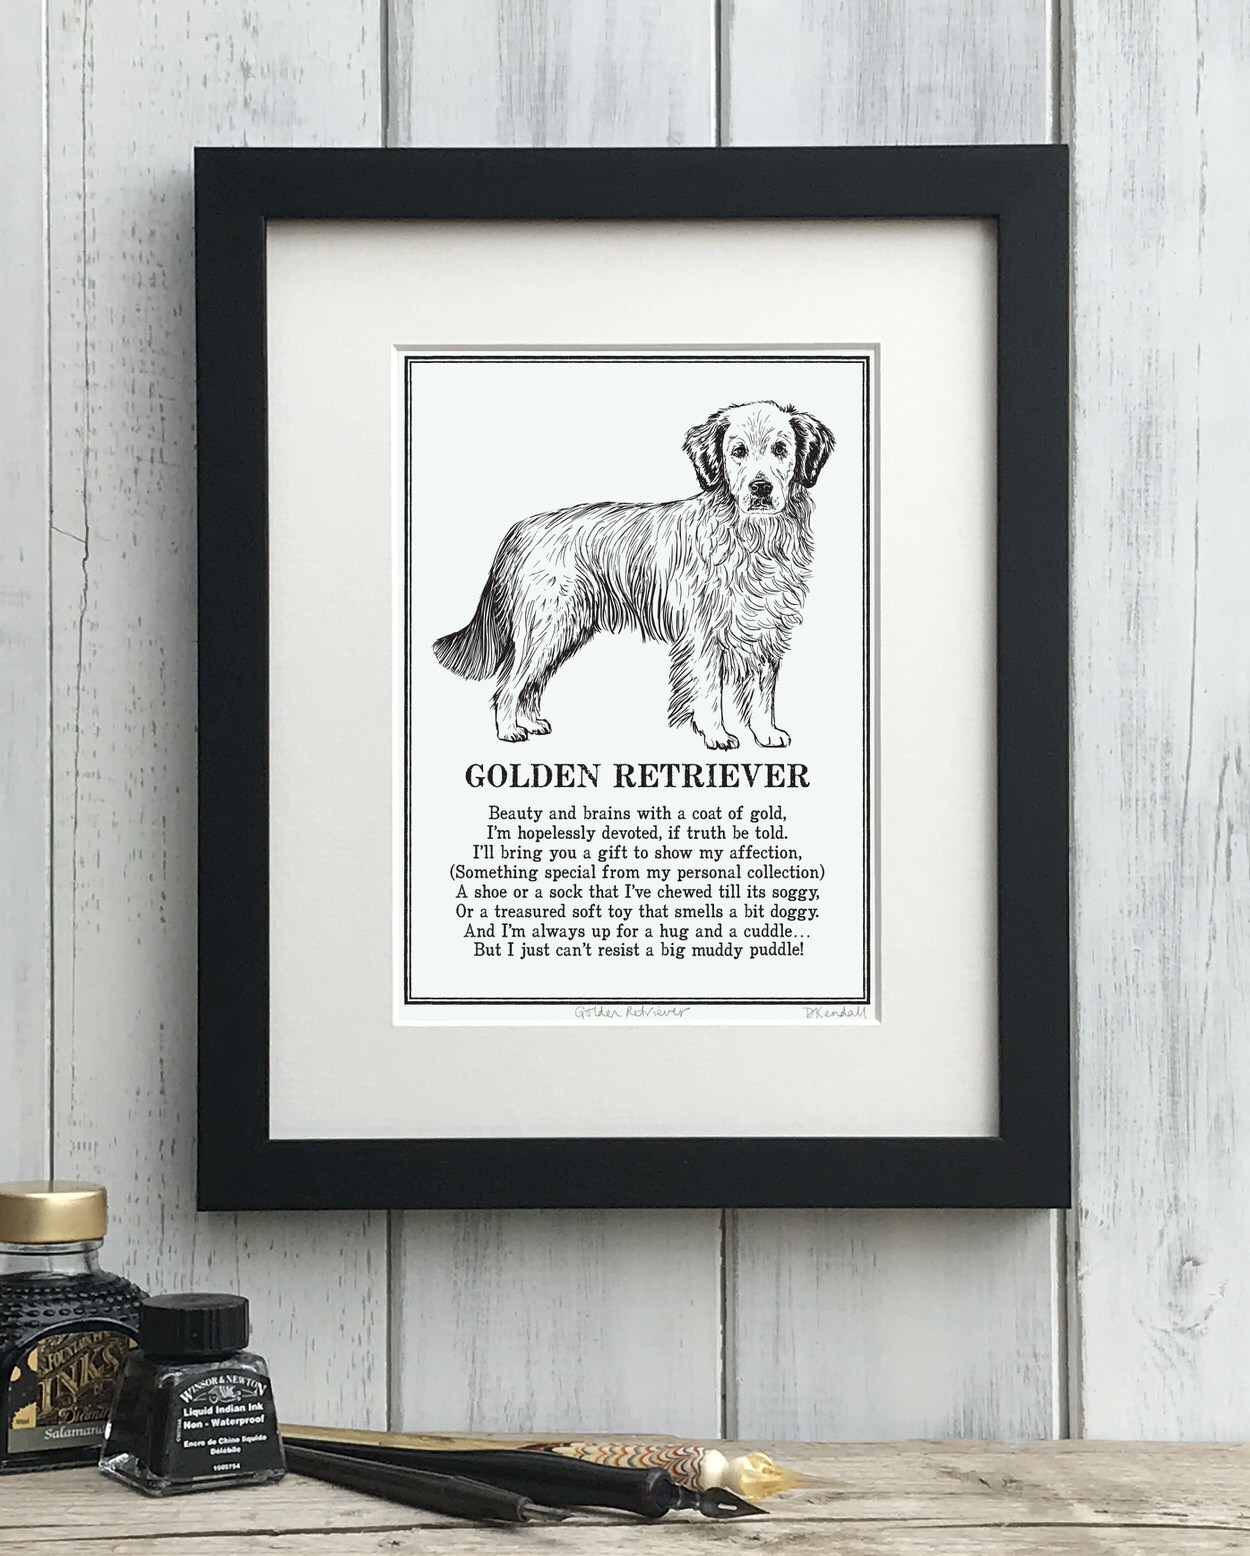 Golden Retriever print illustrated poem by The Enlightened Hound